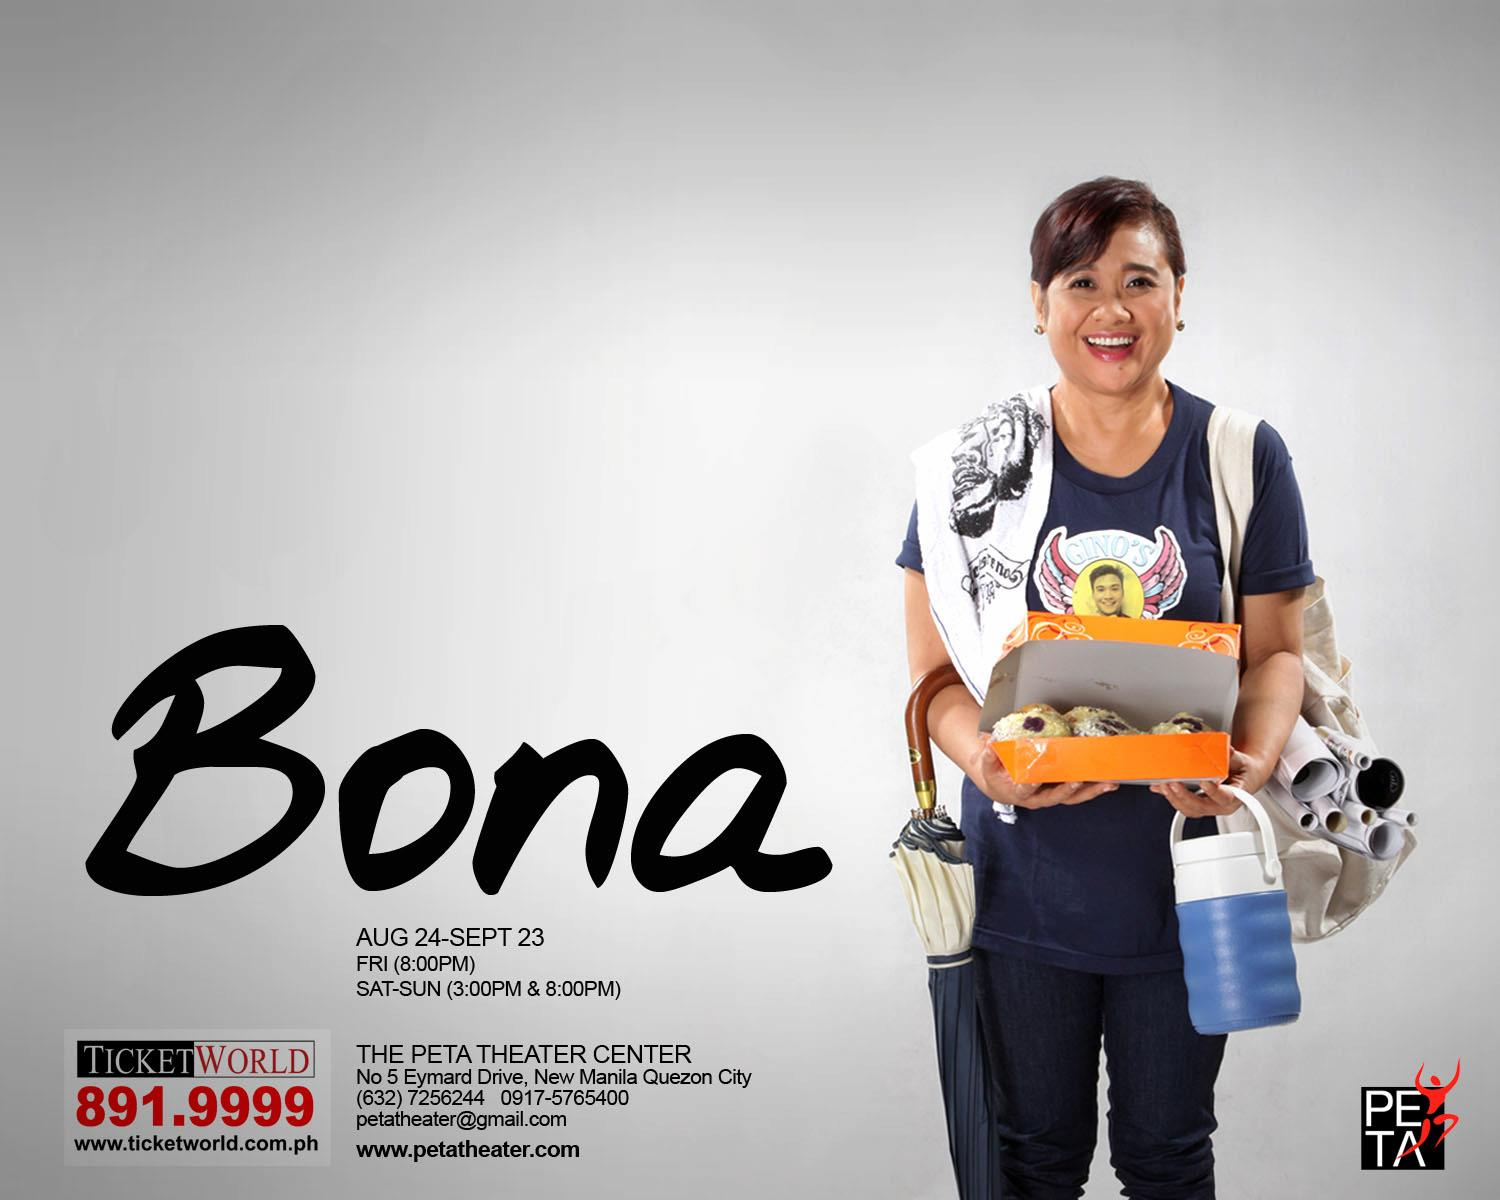 BONA: Lino Brocka's Film Gets Stage Adaptation, 8/24-9/23